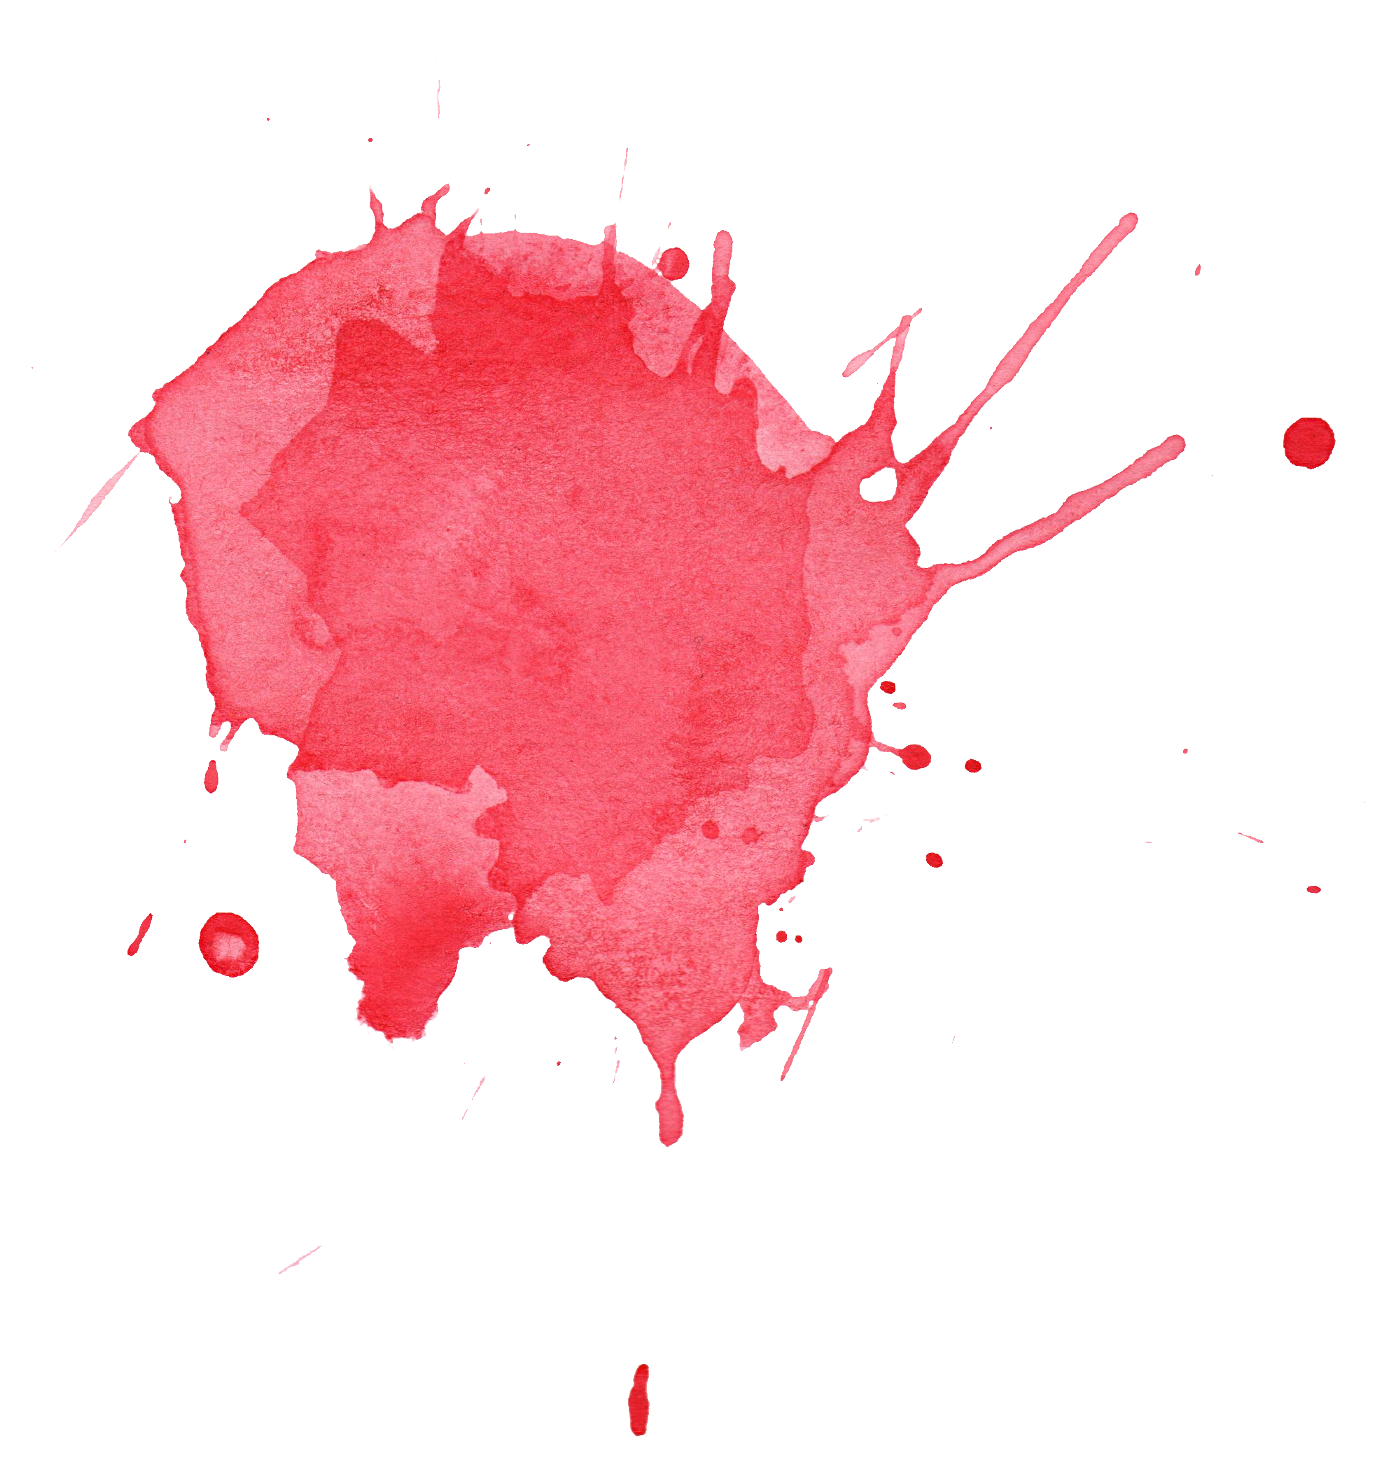 Dried blood stain png. Red watercolor splatter